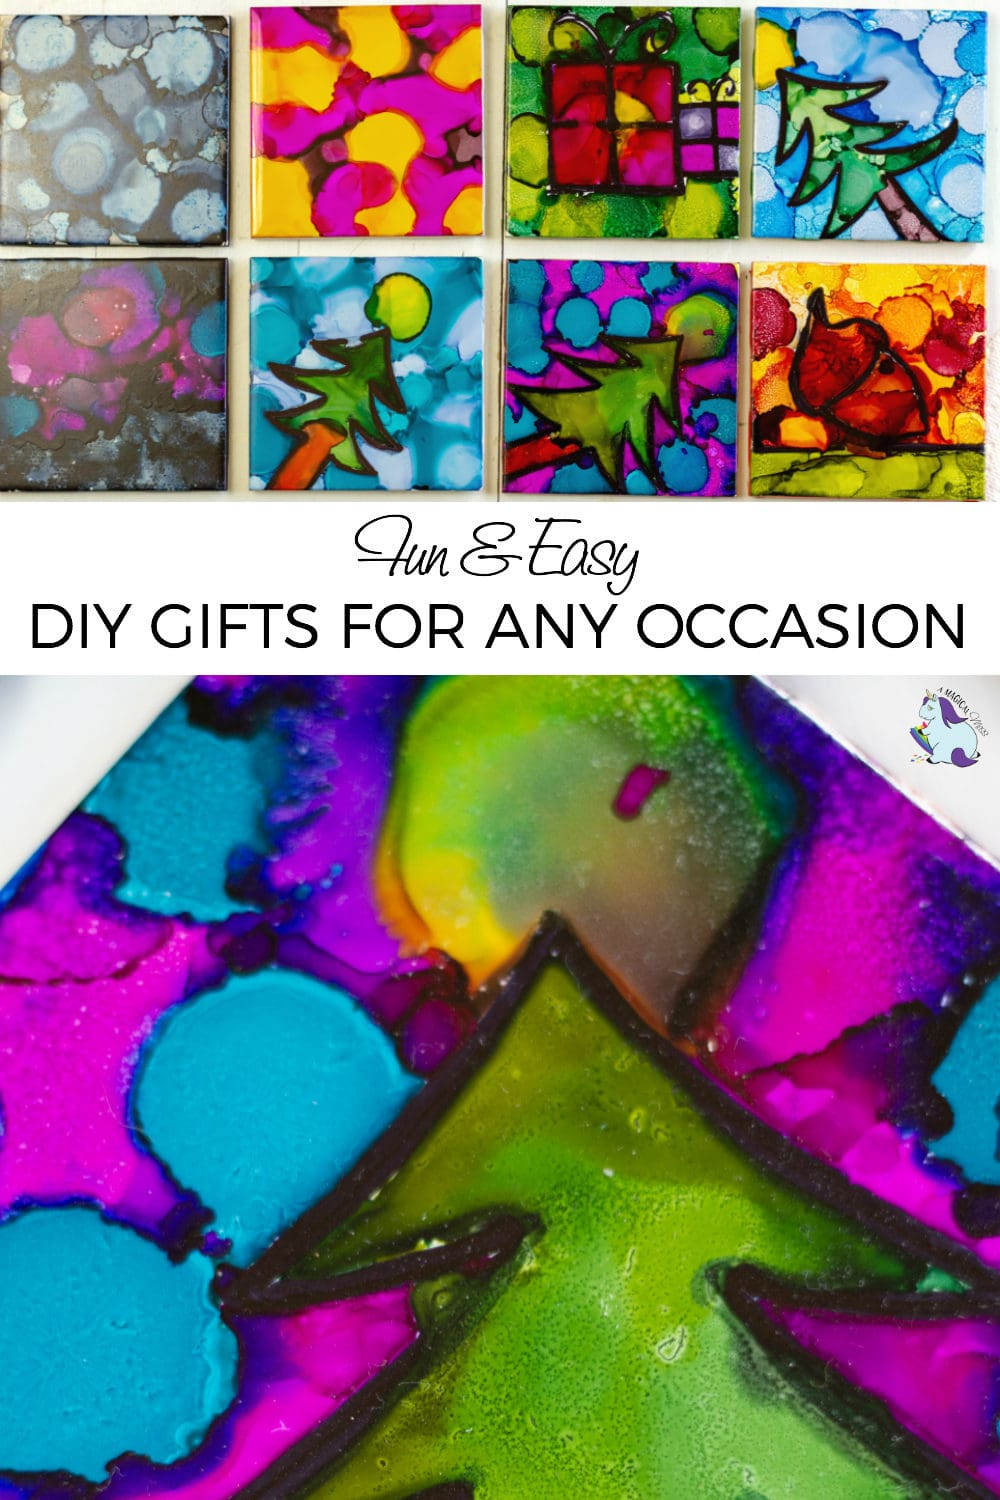 Fun and Easy DIY Gifts - colorful alcohol ink tile coasters